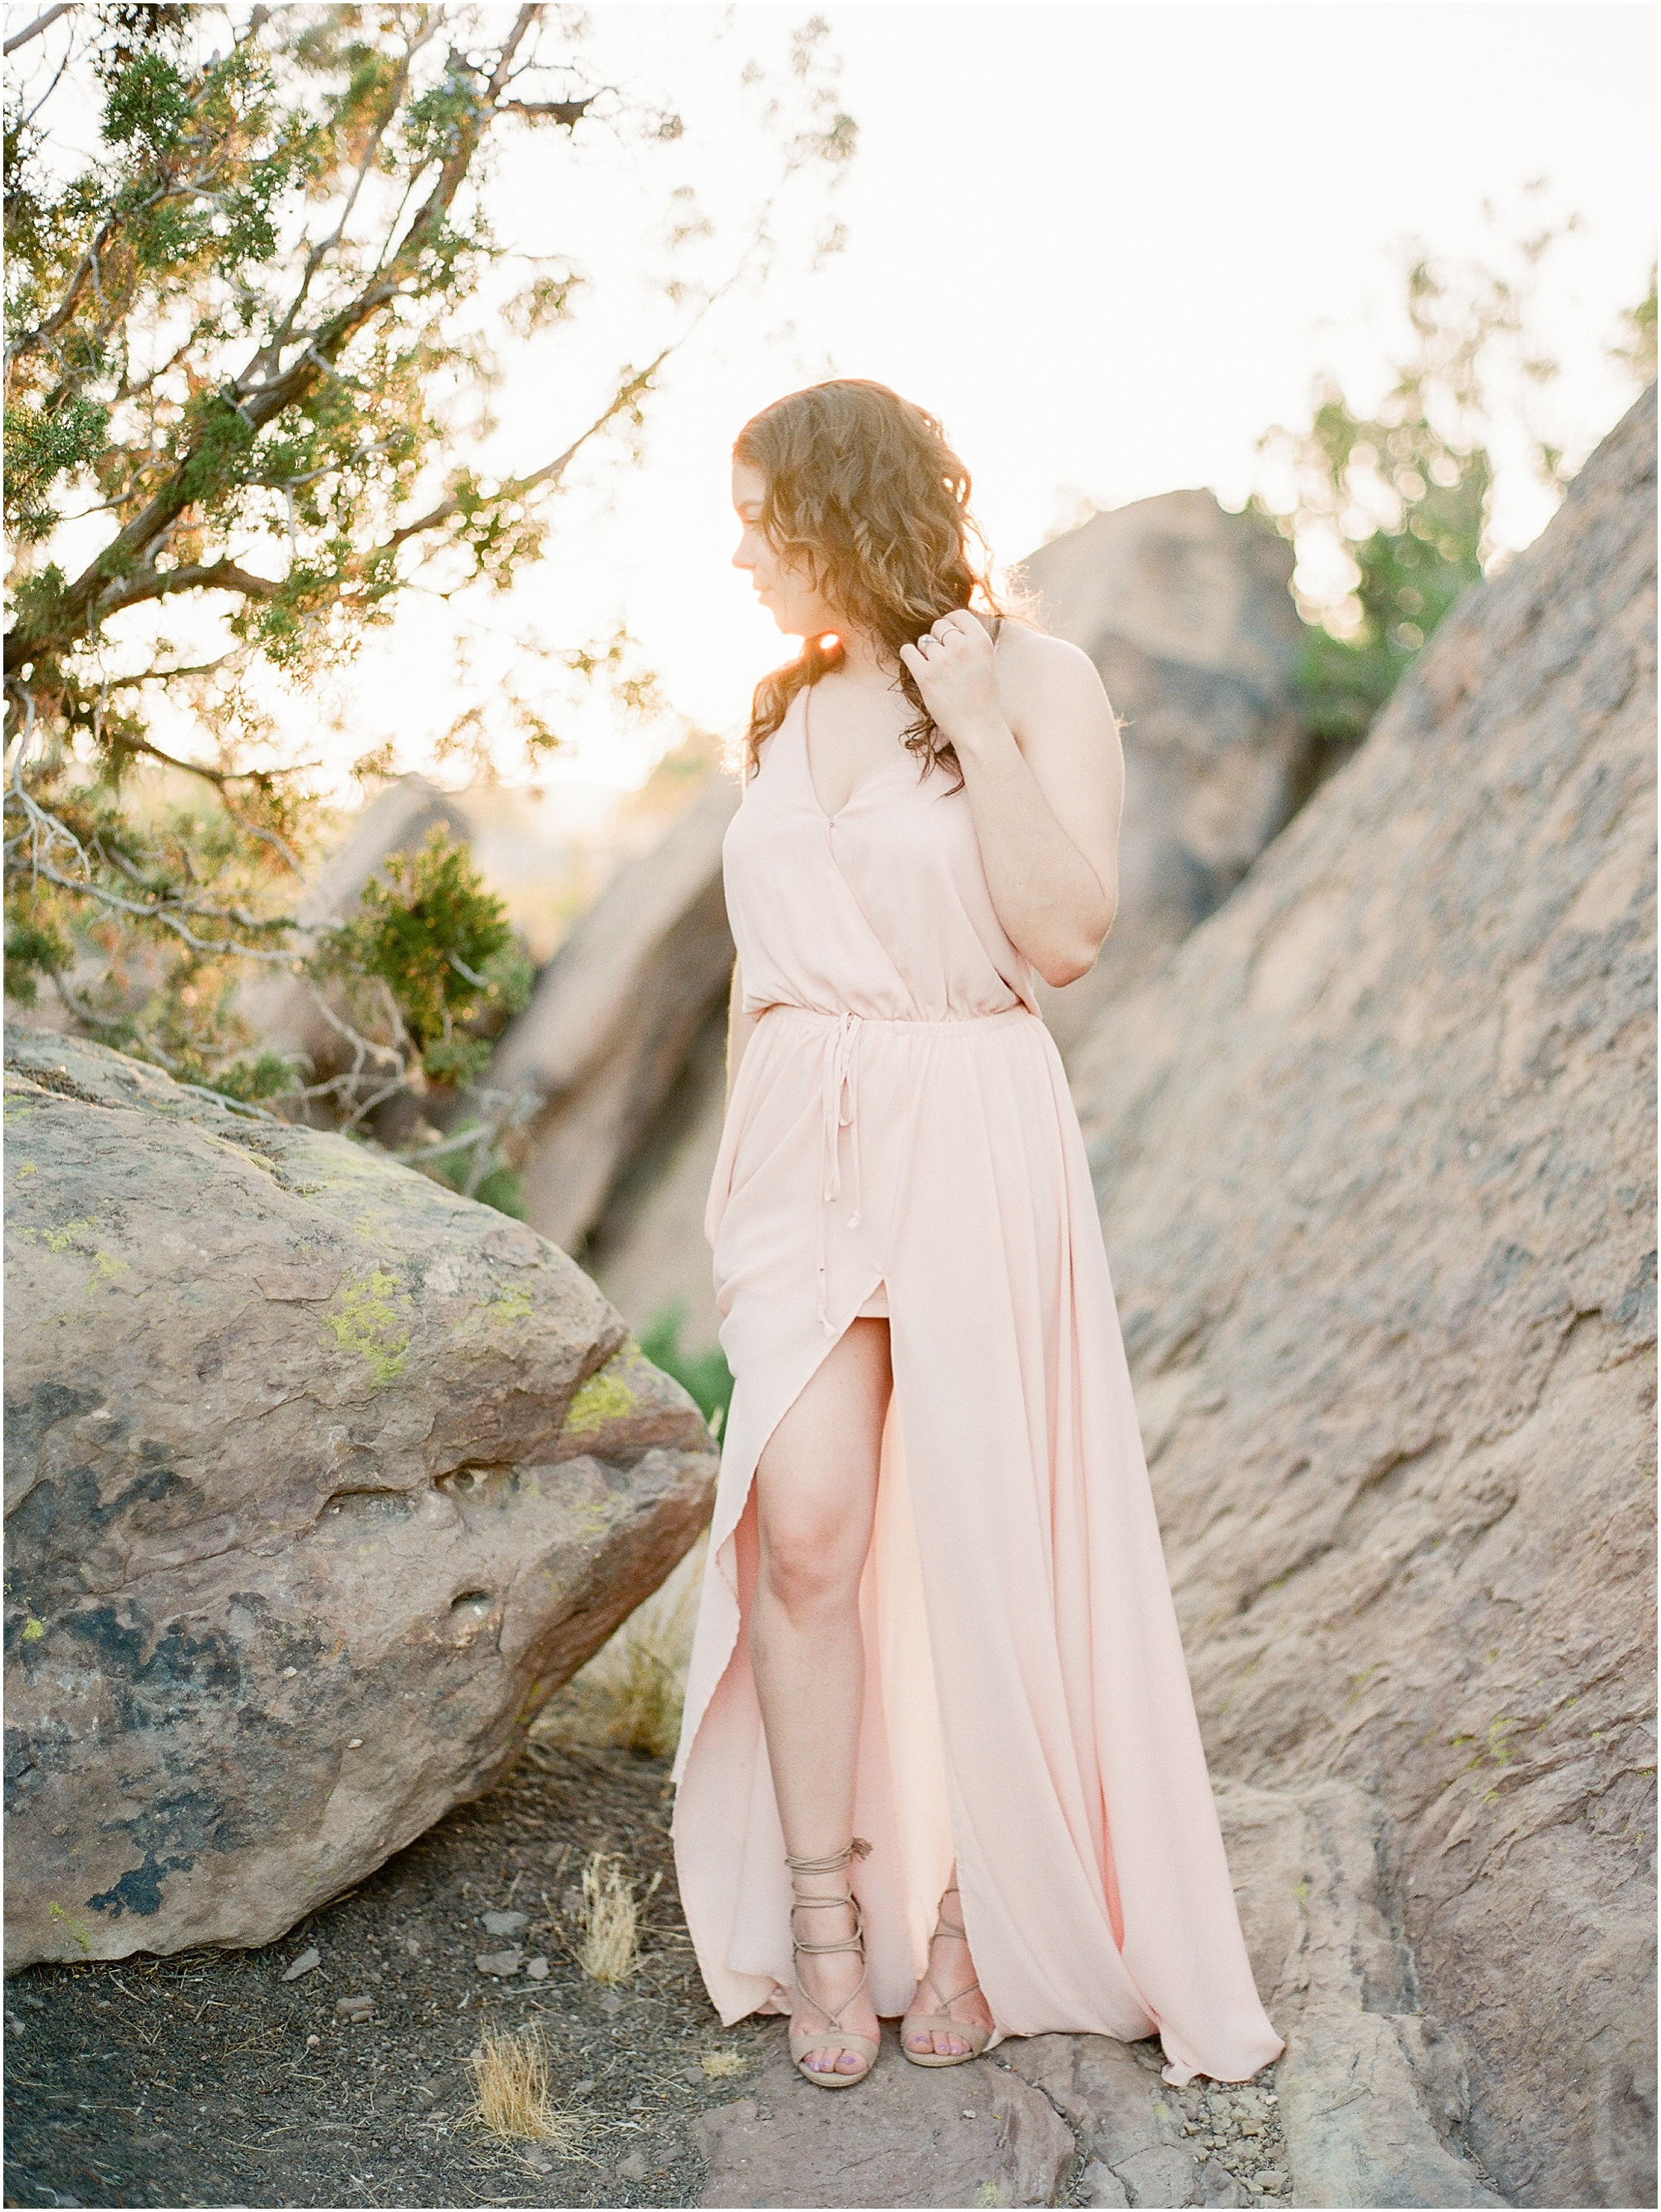 Vasquez-rocks-engagement-session-67.jpg